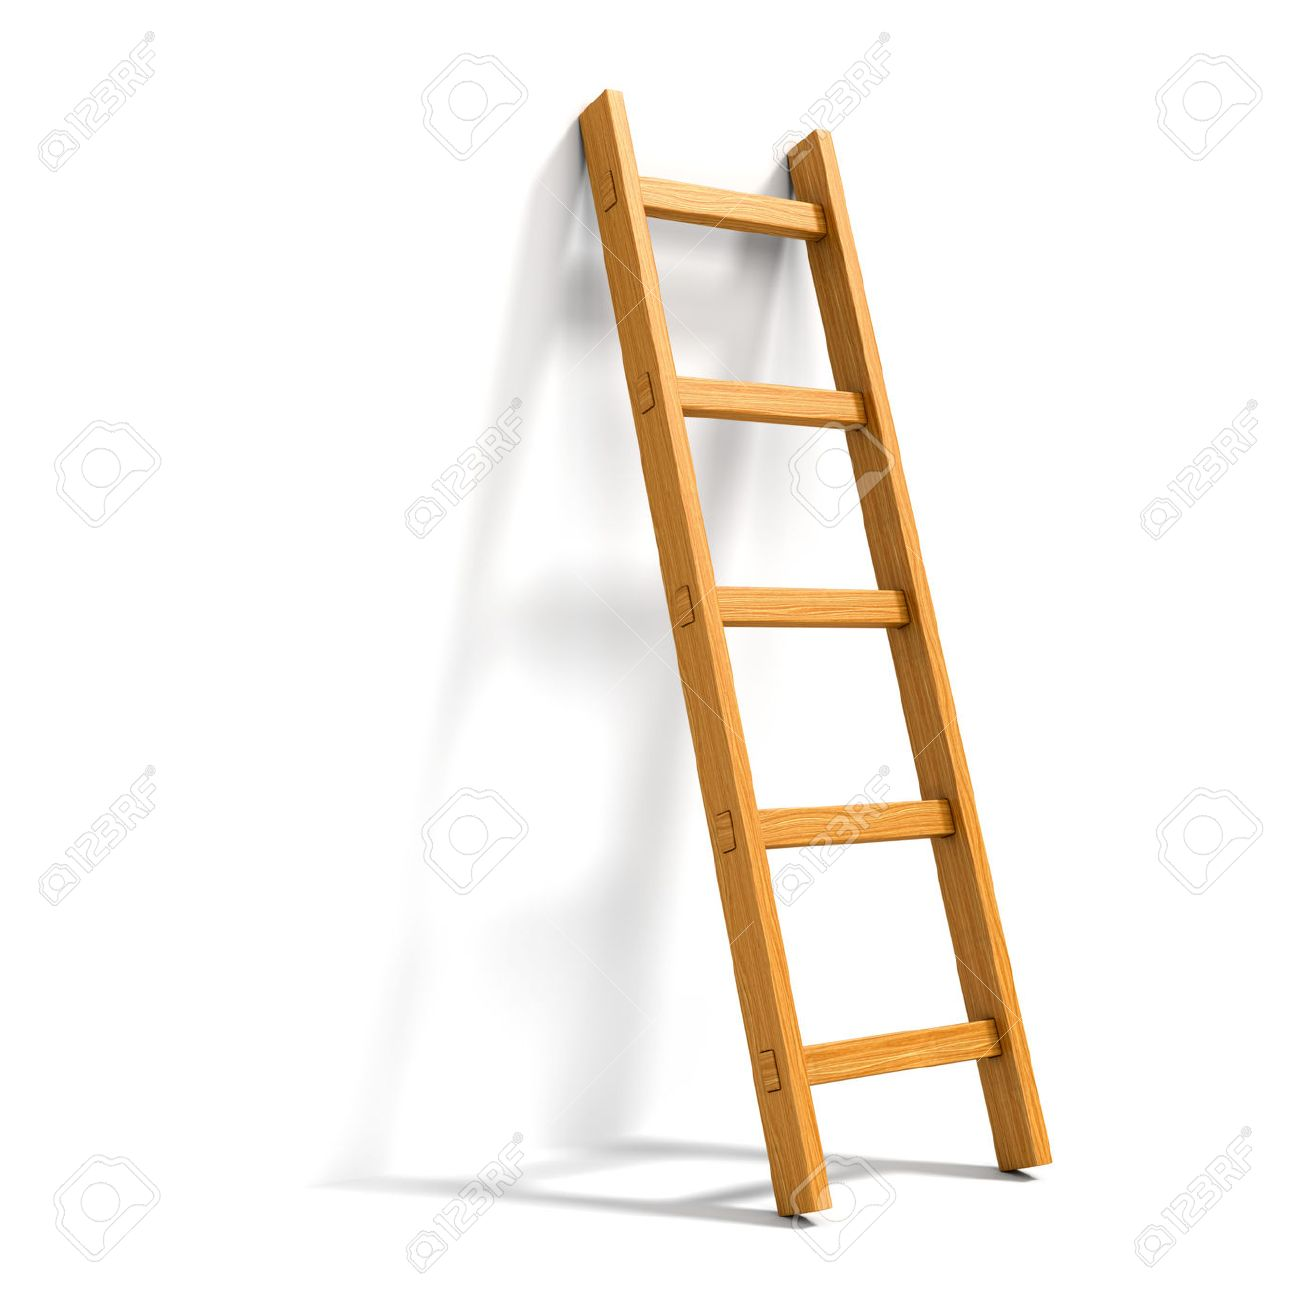 6,752 Step Ladders Stock Vector Illustration And Royalty Free Step ...